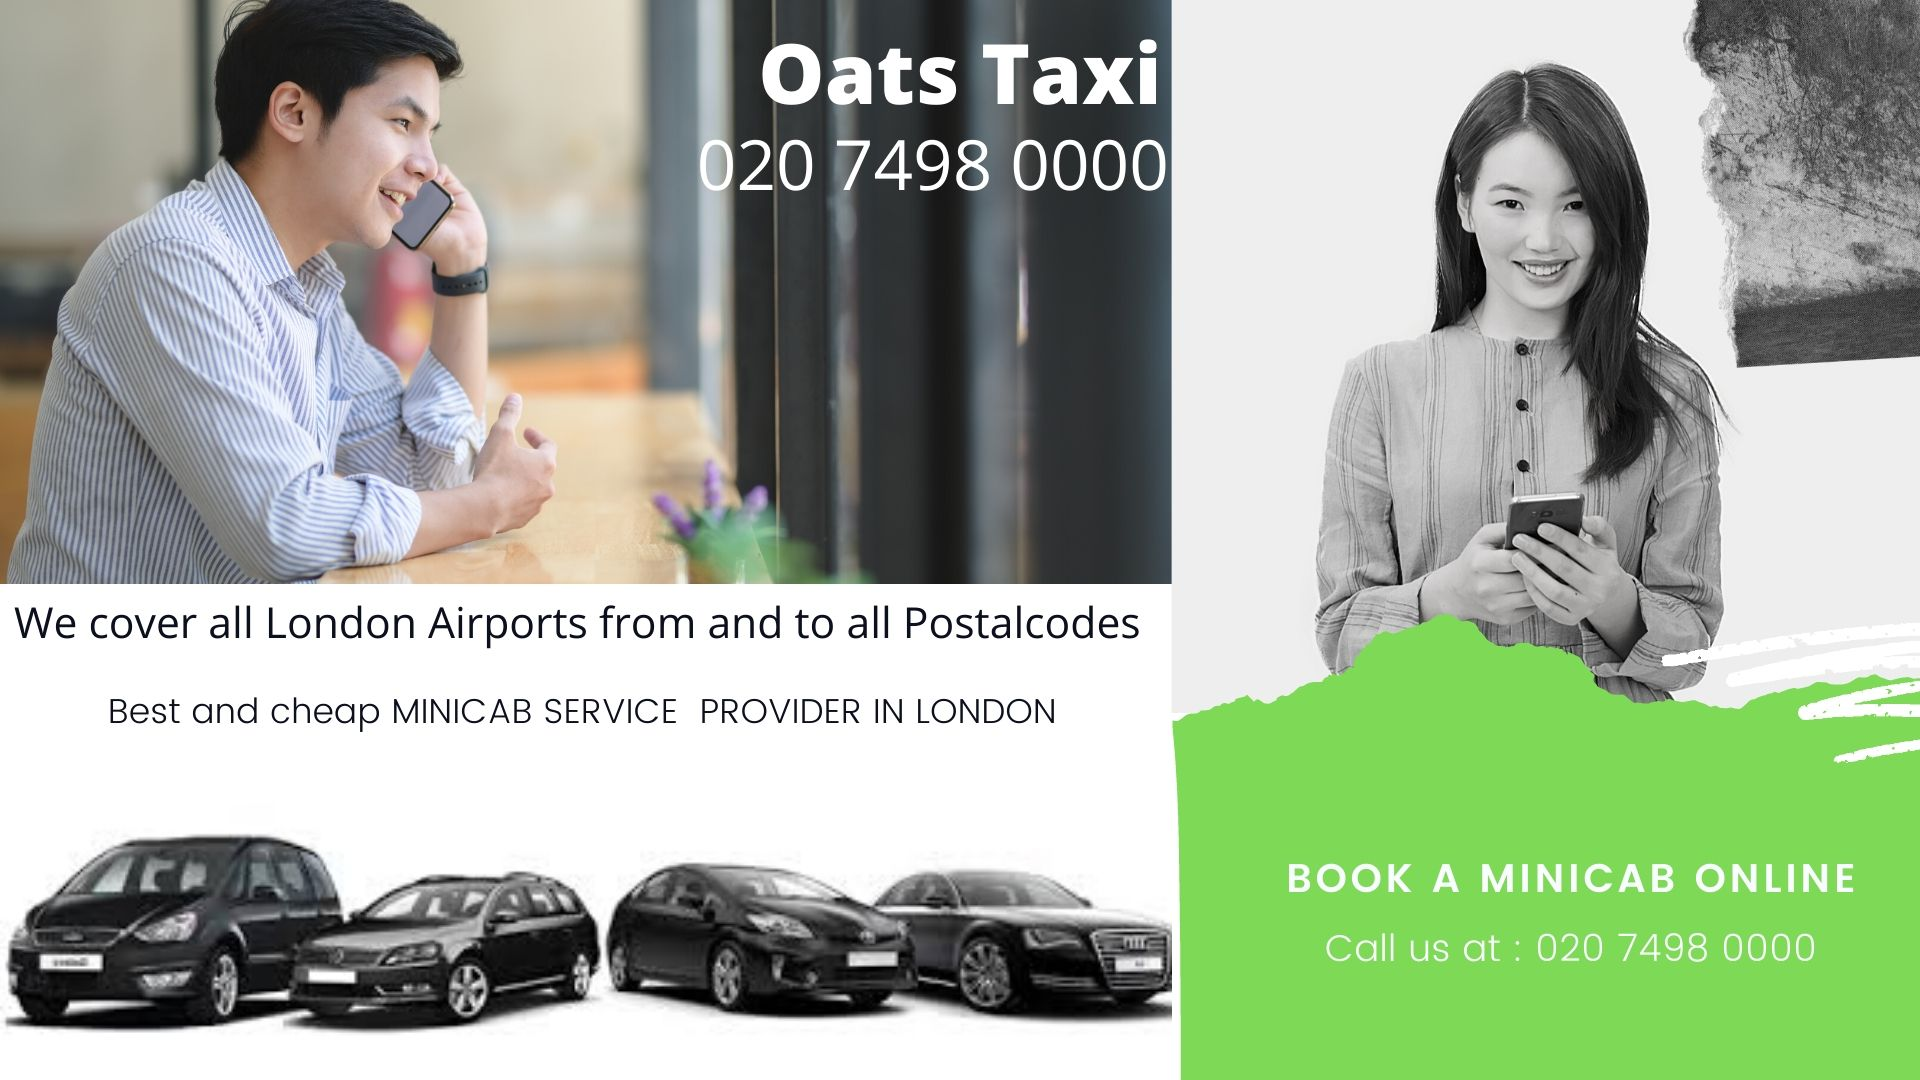 Nearest Minicab Office in Teddington | Minicab Gatwick Airport | Call now : 02074980000